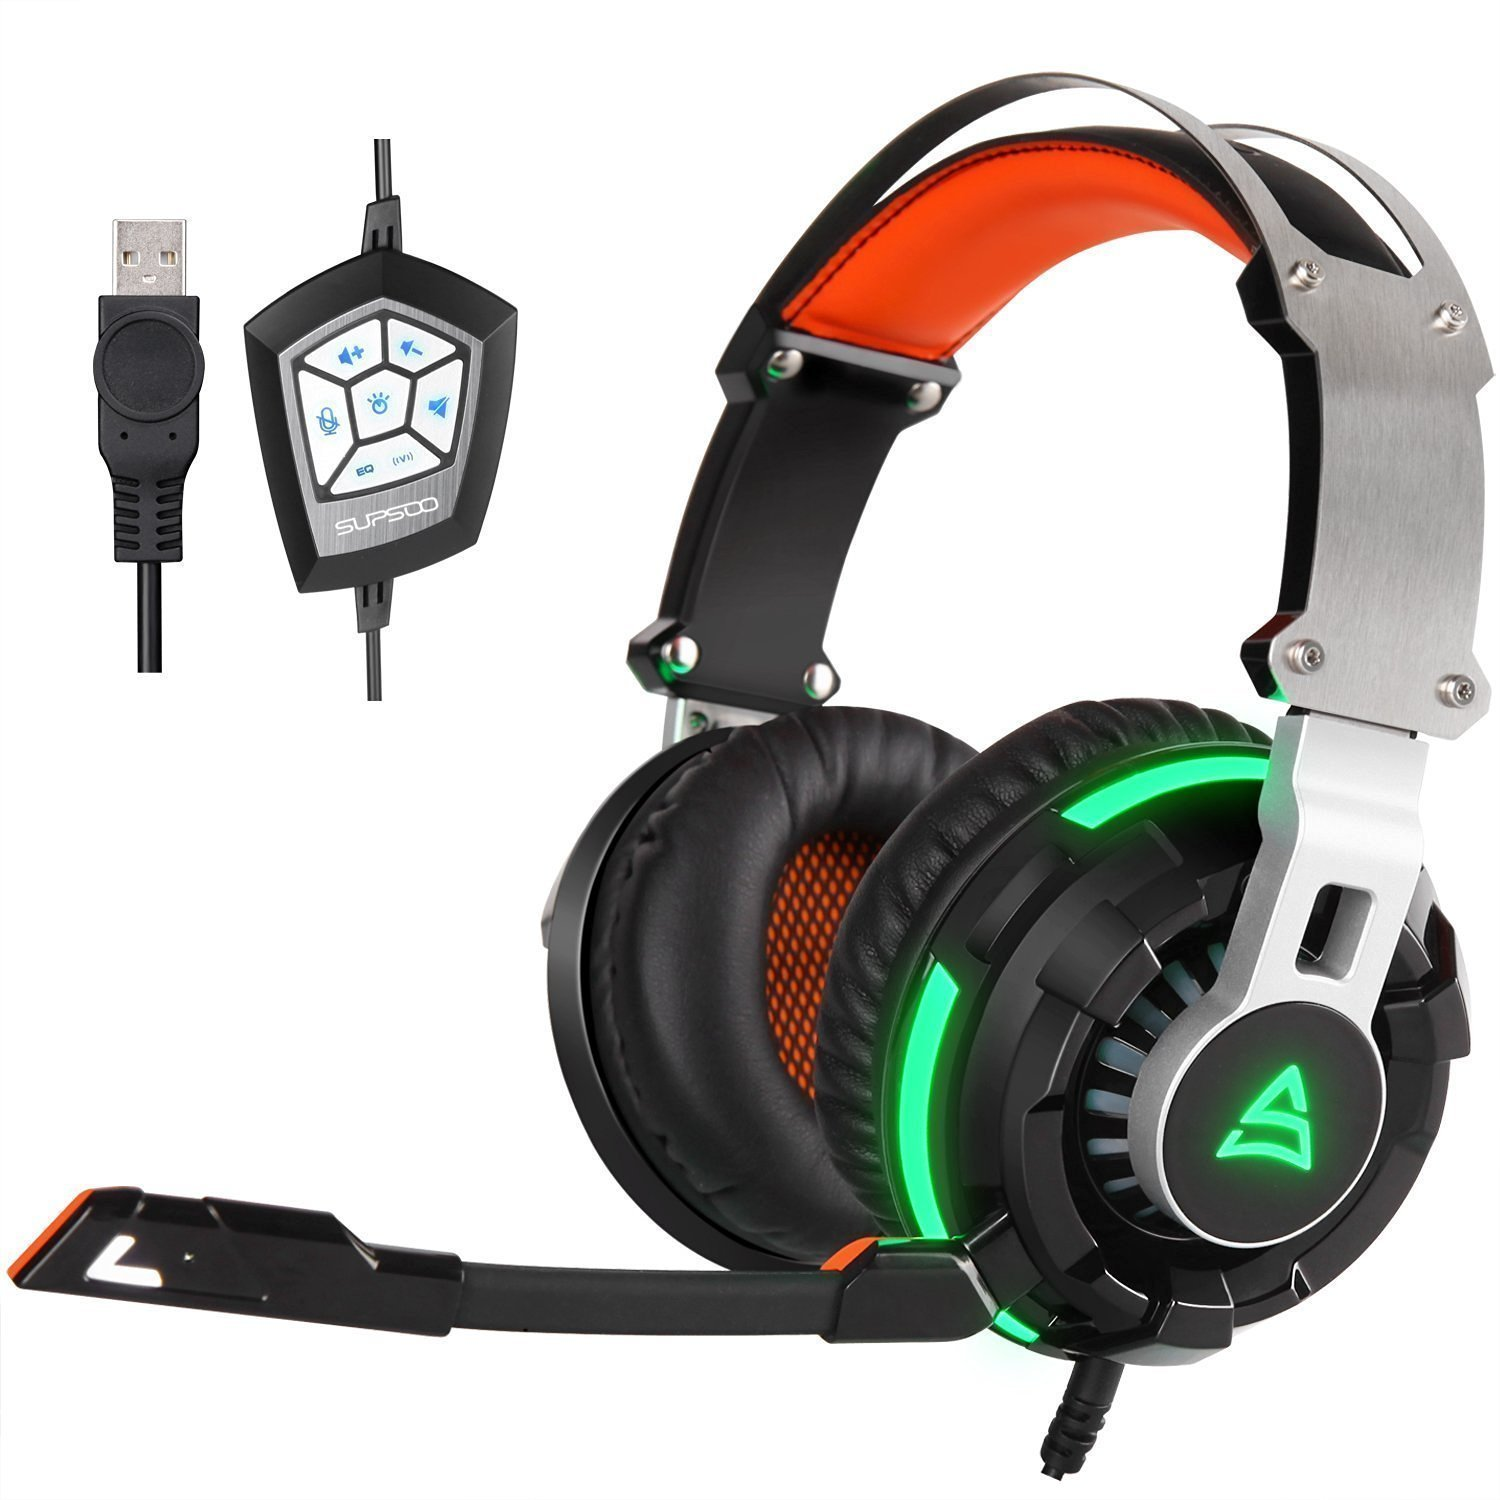 GT Supsoo G800 USB Wired Stereo Over-Ear Gaming Headset